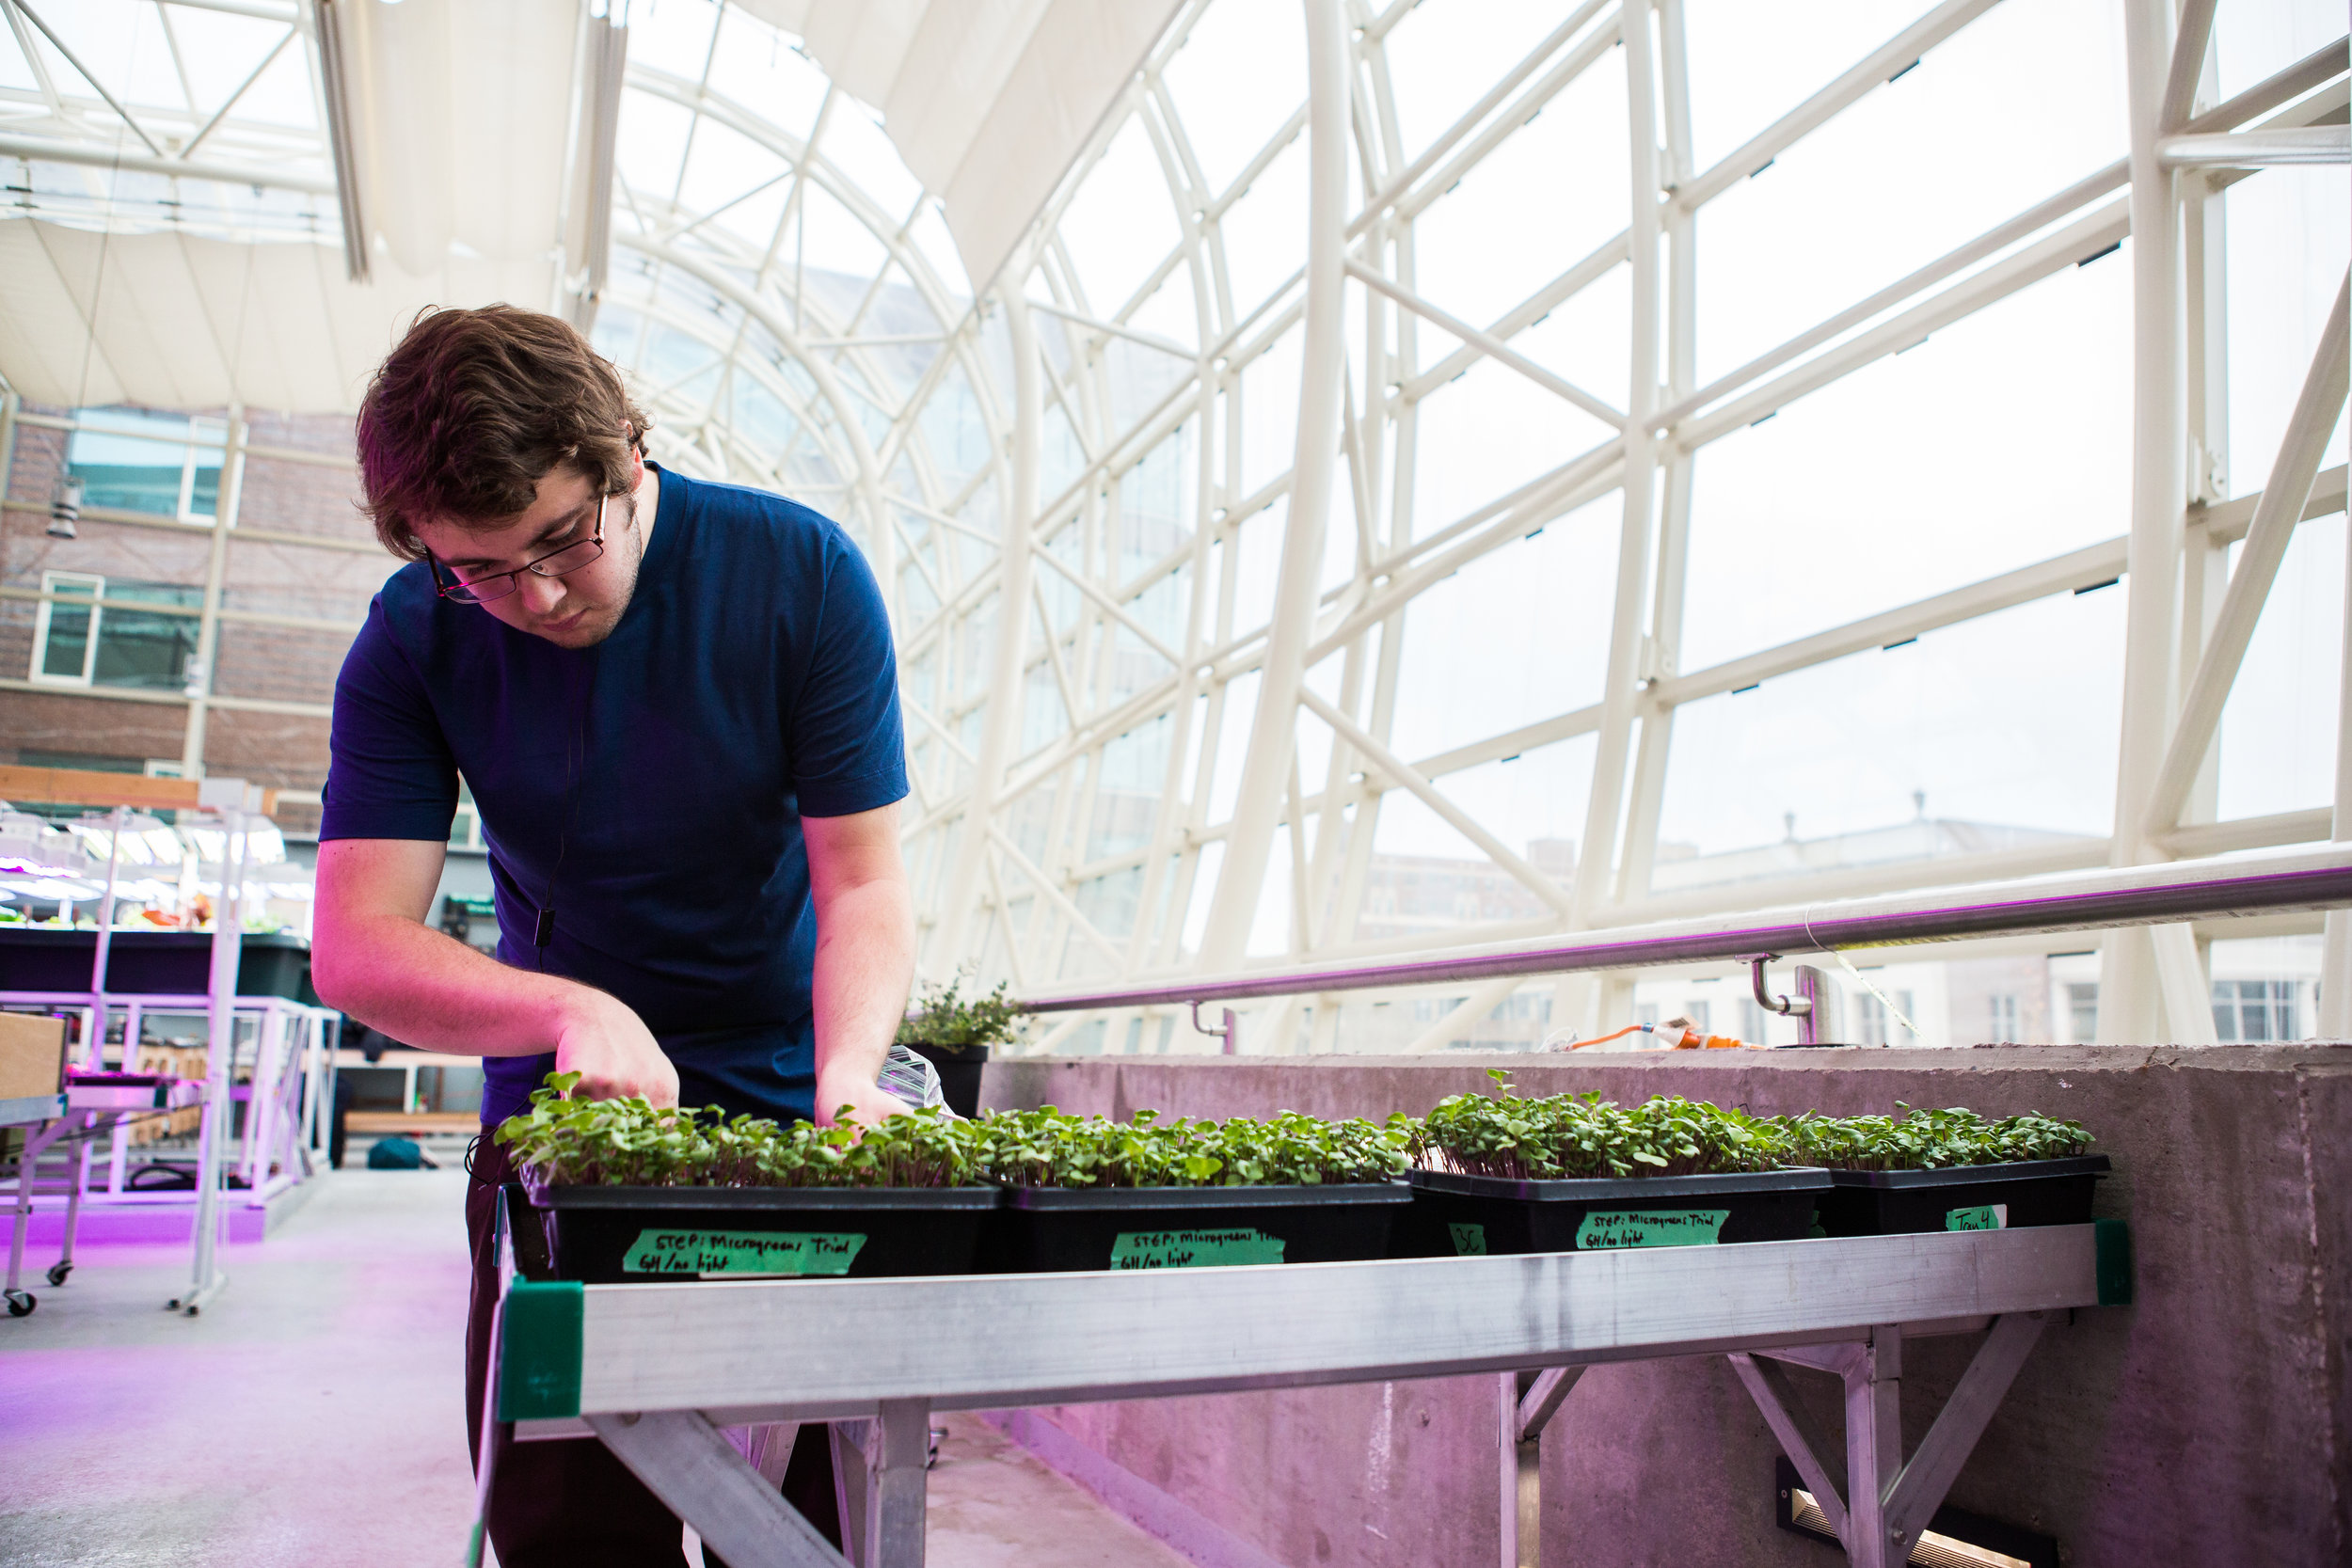 Jon Barber trims microgreens inside the Ecodome as part of his research for a STEP course (Photo by Heather Eidson)